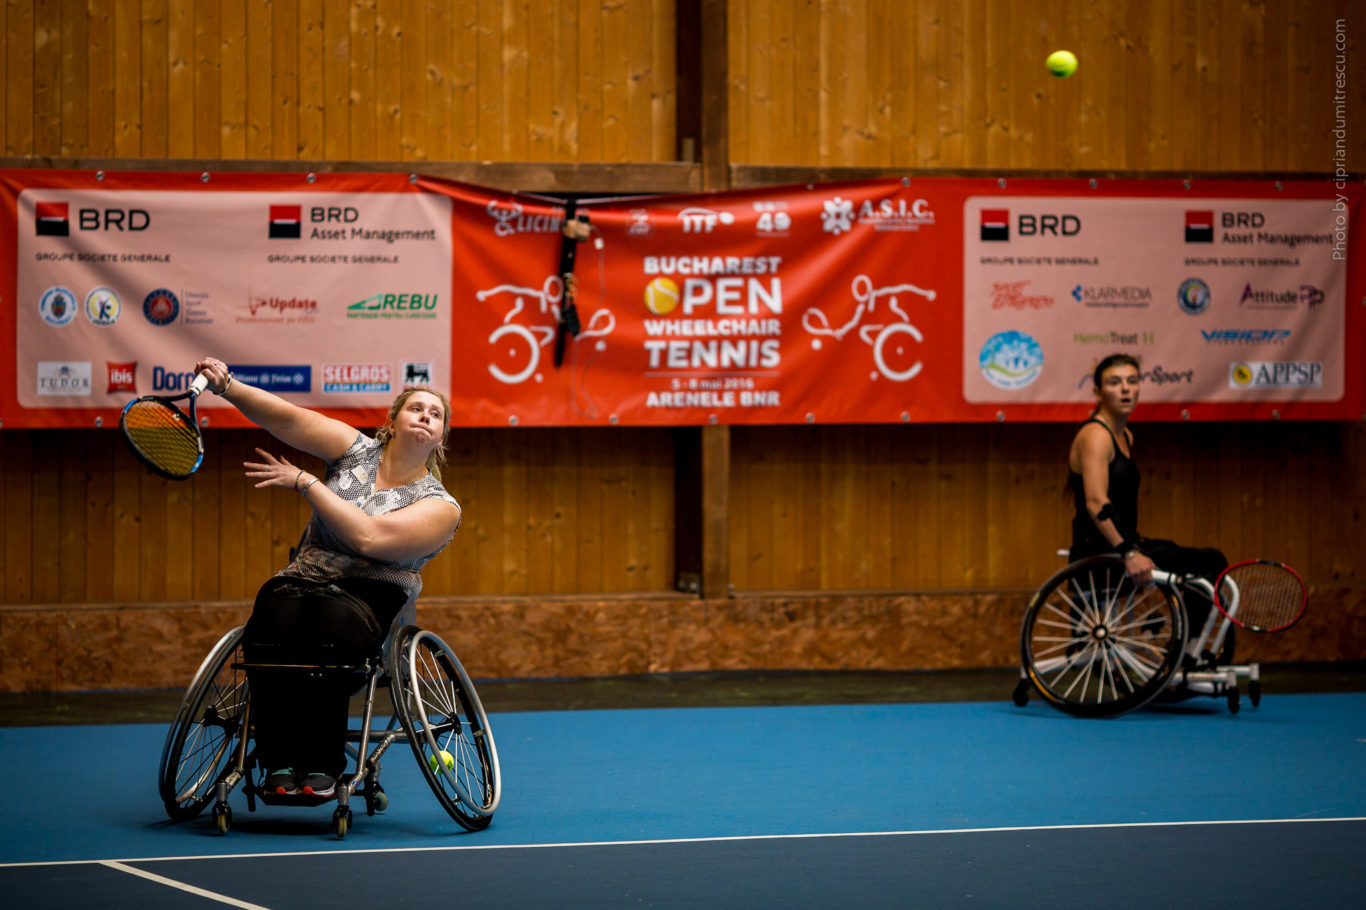 022-Bucharest-Open-Wheelchair-2016-Day-One-Photographer-Ciprian-Dumitrescu